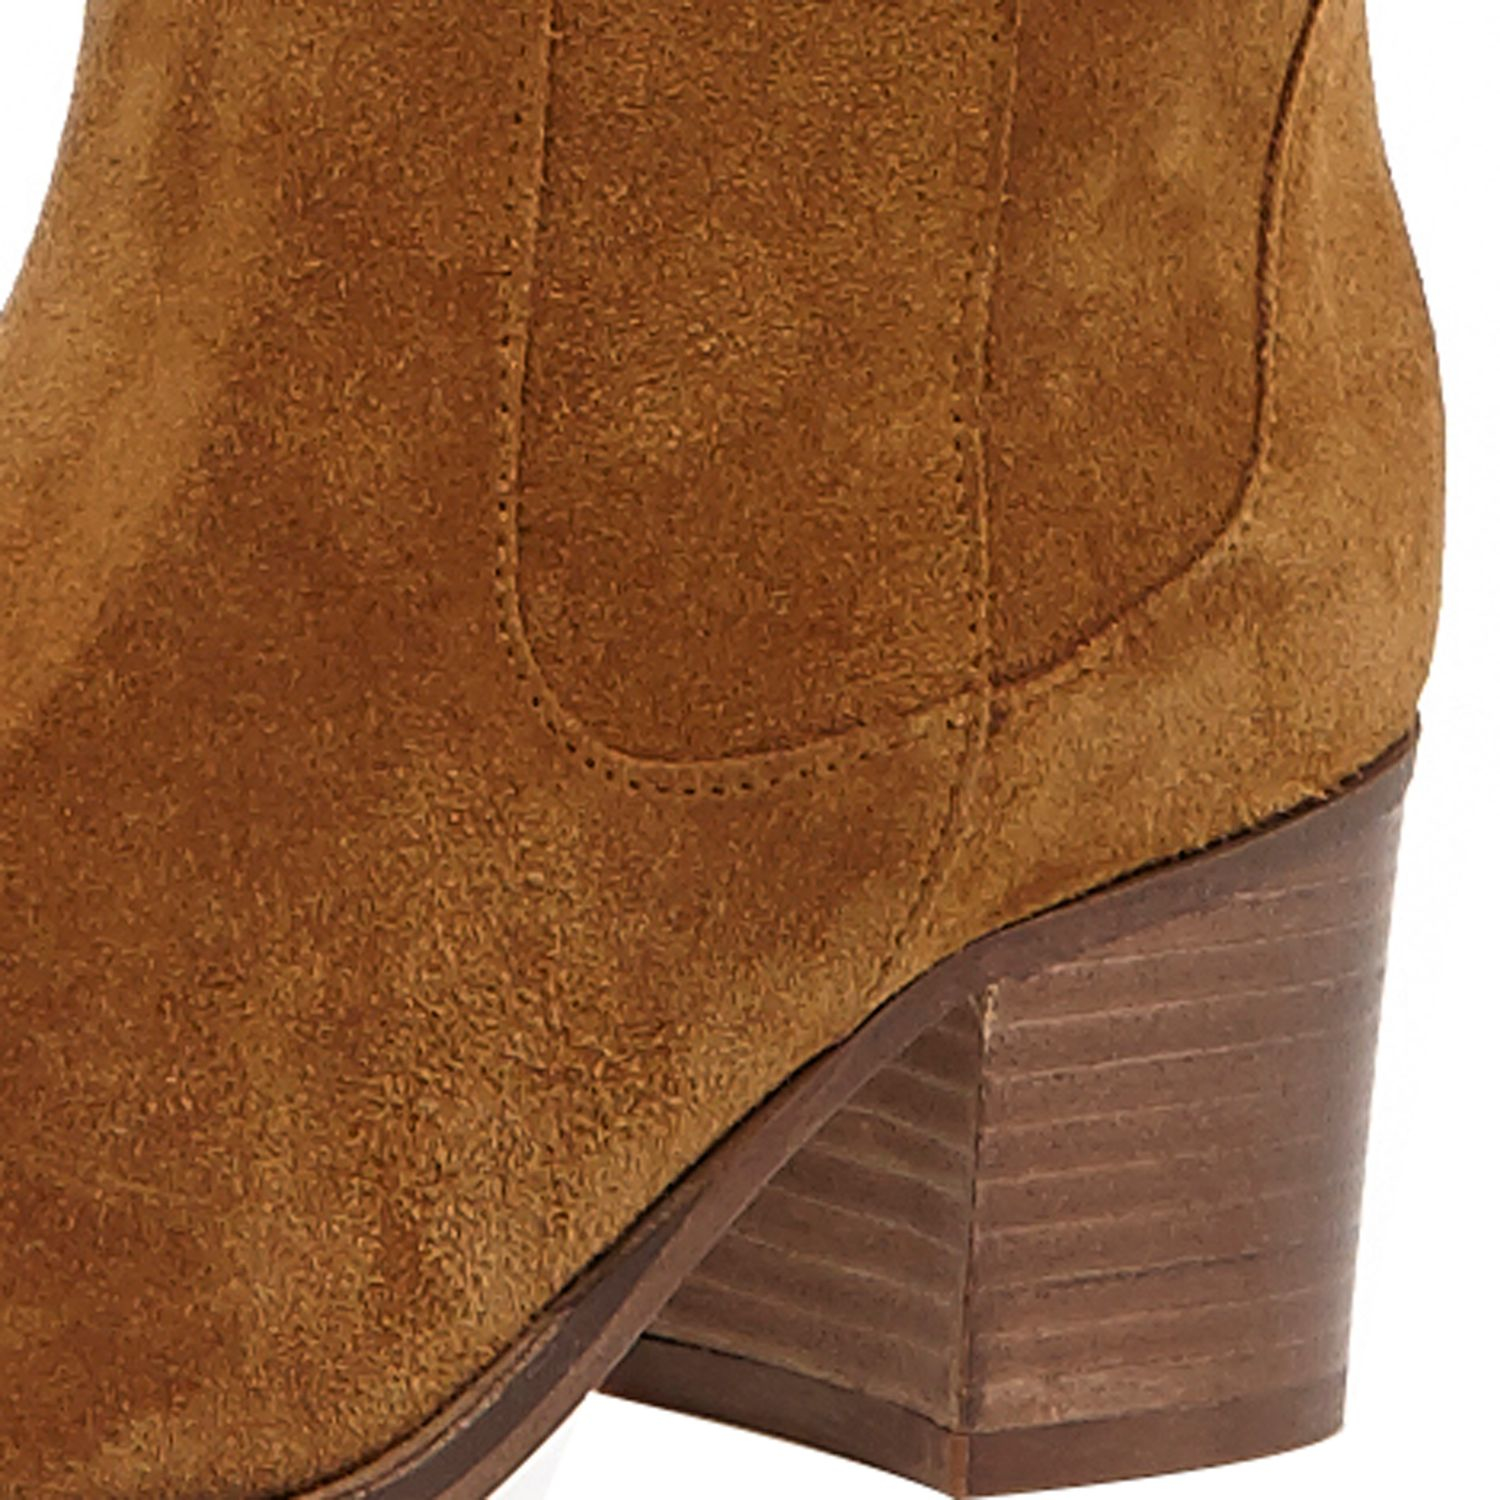 8fafd7570e7 River Island - Tan Brown Suede Knee High Boots - Lyst